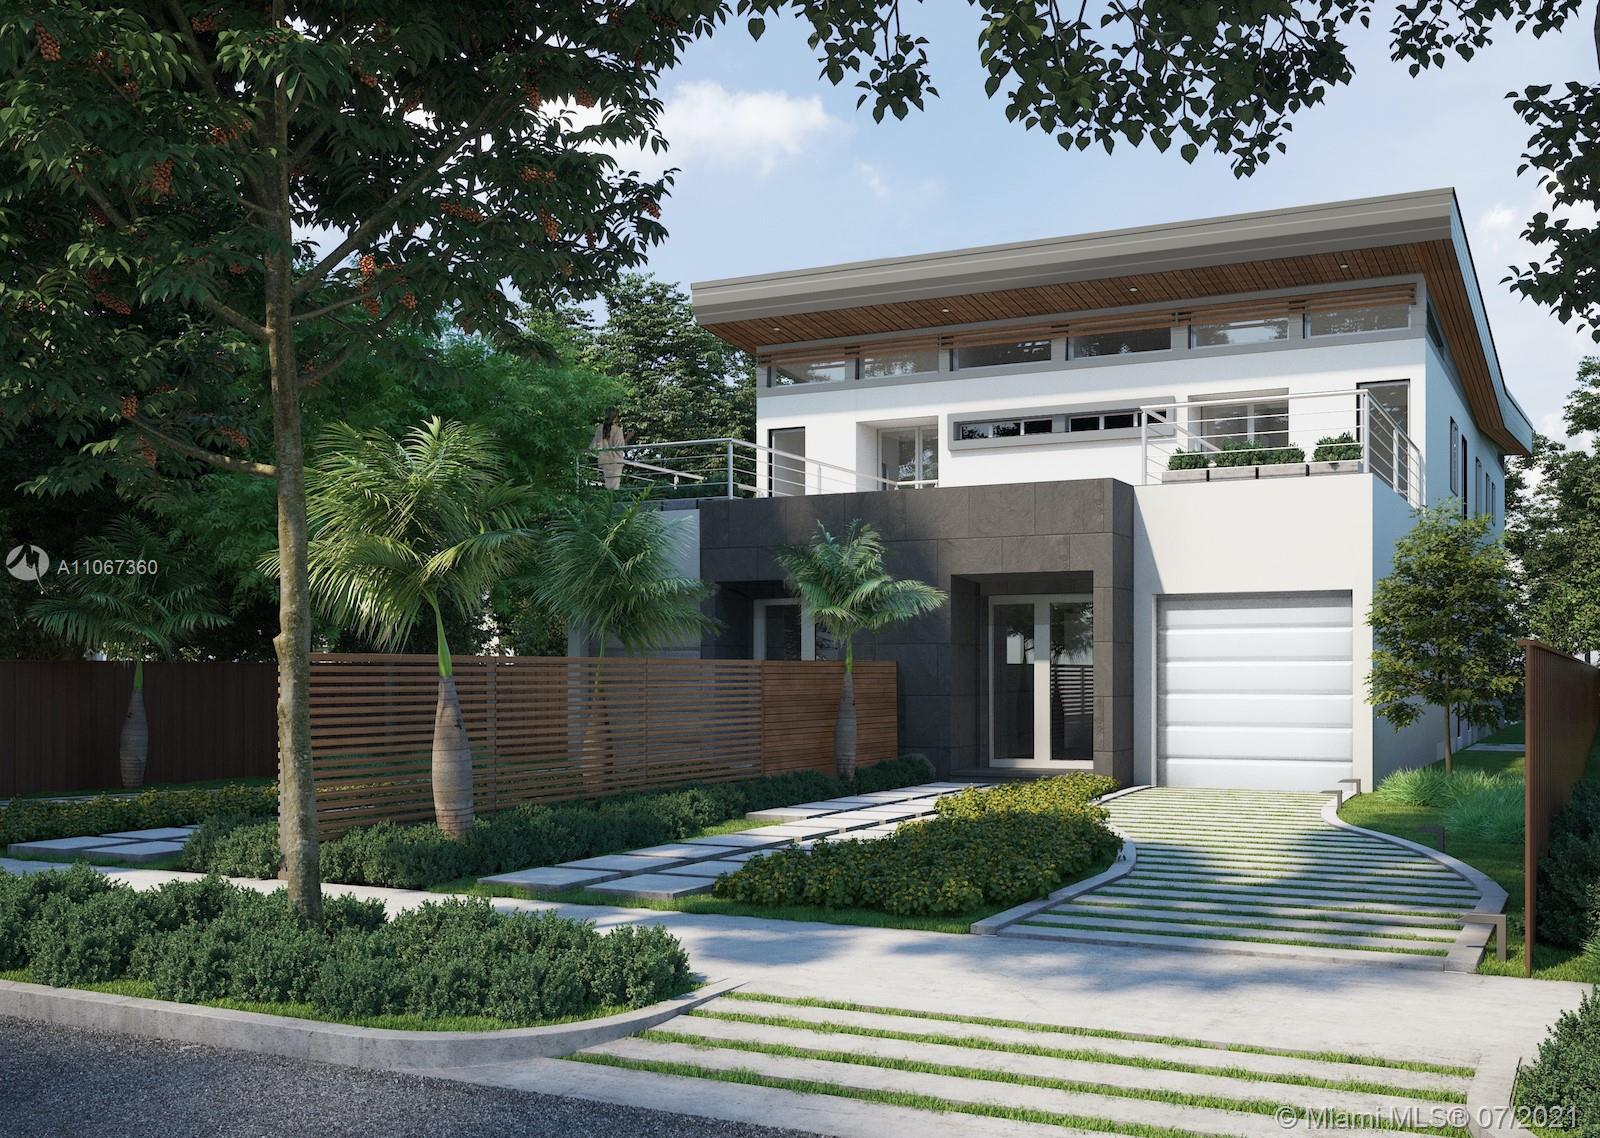 ONE OF TWO SPACIOUS NEW CONSTRUCTION 3 Bedroom 3 Bathroom PLUS Den/Office Townhomes in Highly Sought-After Central Fort Lauderdale with NO HOA! You'll fall in love with the luxuriously comfortable design from the moment you walk in.  Every inch of the 2,425 square feet is filled with high-end materials from the Large Format Porcelain Tiles to the European Cabinetry to the Oversized Doors to the Light Fixtures. Both homes feature an Expansive Open Floor Plan, Quartz Waterfall Countertops, European Cabinetry, 3 outdoor Patio Spaces, and a Private Garage. You'll be close to all Holiday Park offers (Dog Park/Basketball/tennis/volleyball/football/baseball/track), a short bike ride to the Beach, and only minutes from the Fine Dining & Entertainment of Las Olas. August Completion